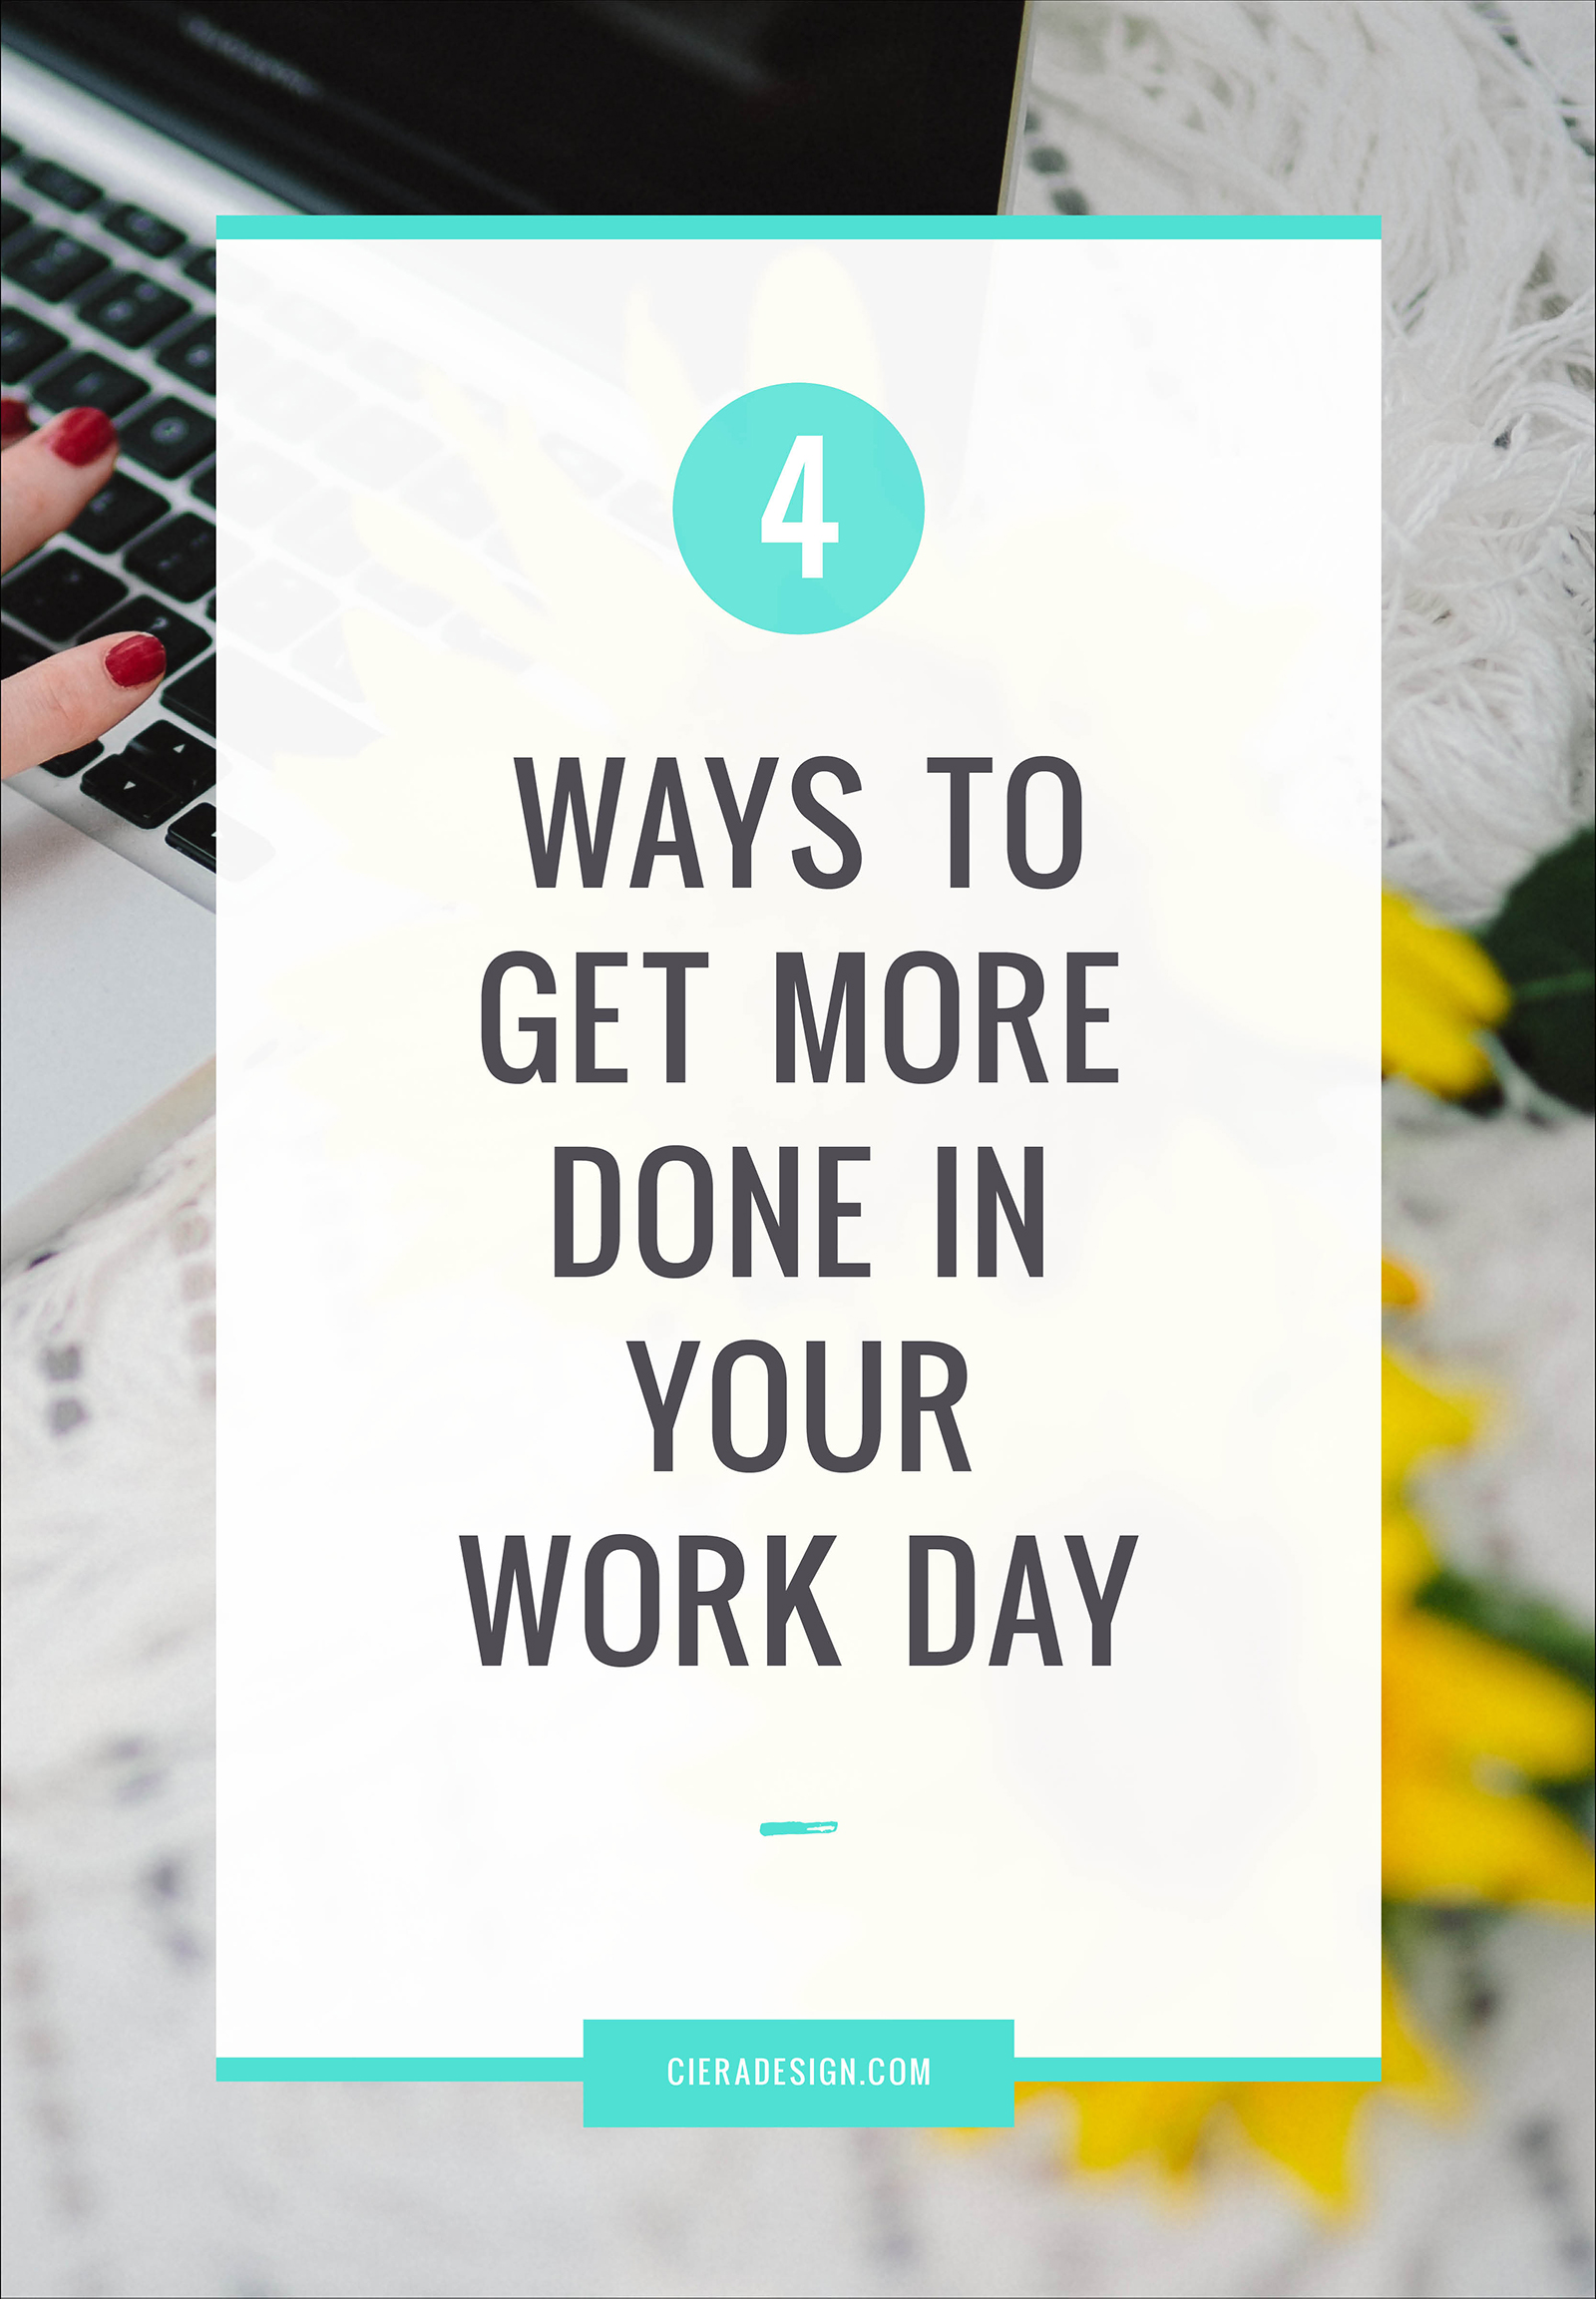 As a small business owner, you only have so much time in the day to get everything done. Sure, you could work overtime or start work especially early in the morning to give yourself a fighting chance, but this could lead to burnout if you push yourself too hard.  Thankfully, there are some simple ways to get more things done each day, without the problem of exhaustion affecting your life. Take a look at our ideas.